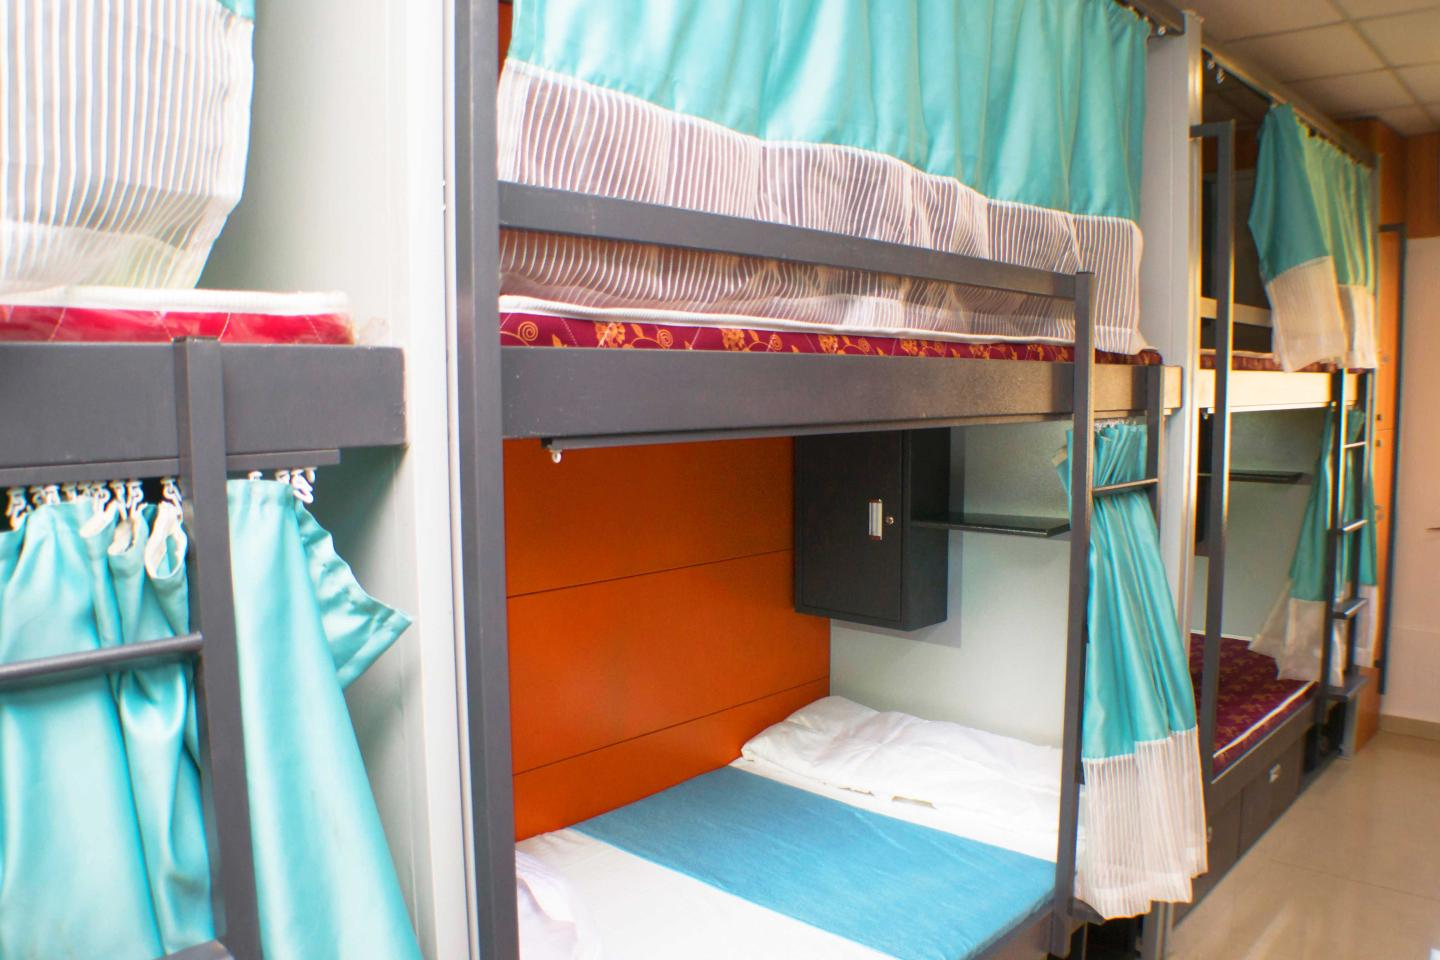 Deluxe AC Dormitory Meal Plan MAP, ARMA HOSTEL (QUBE STAY) - Budget Hotels in Mumbai